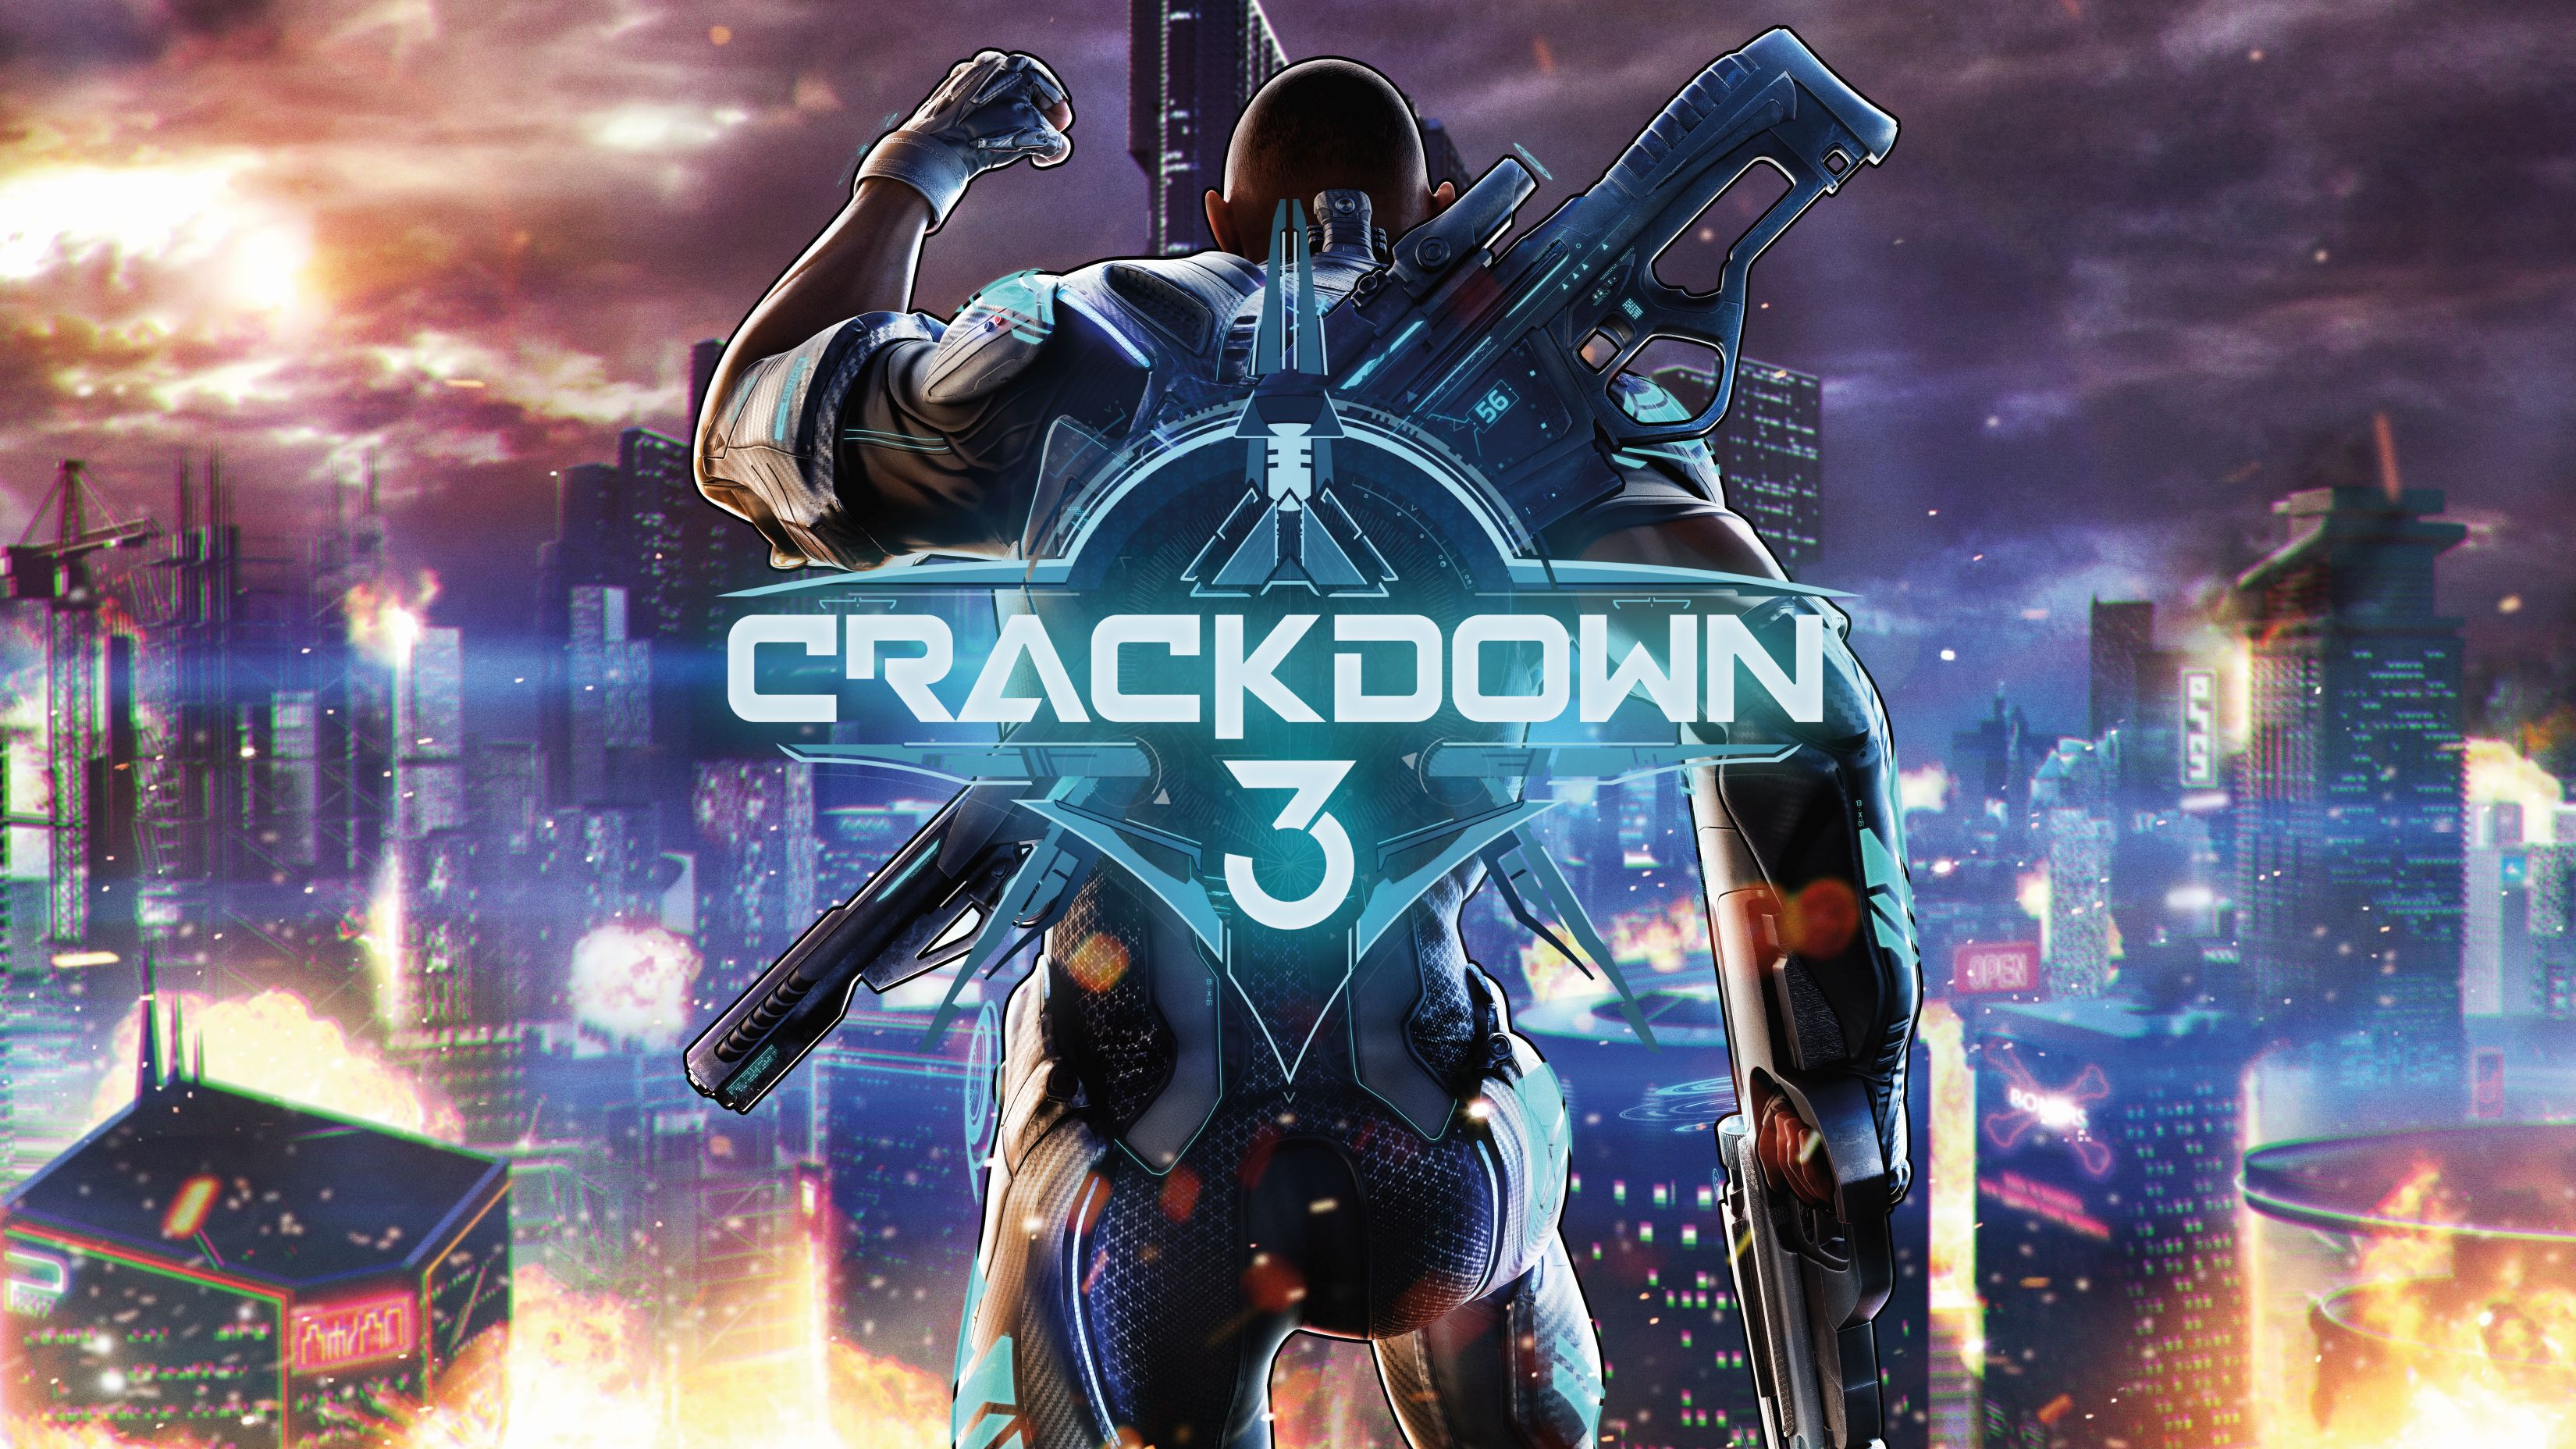 Crackdown-3_Horizontal.jpg